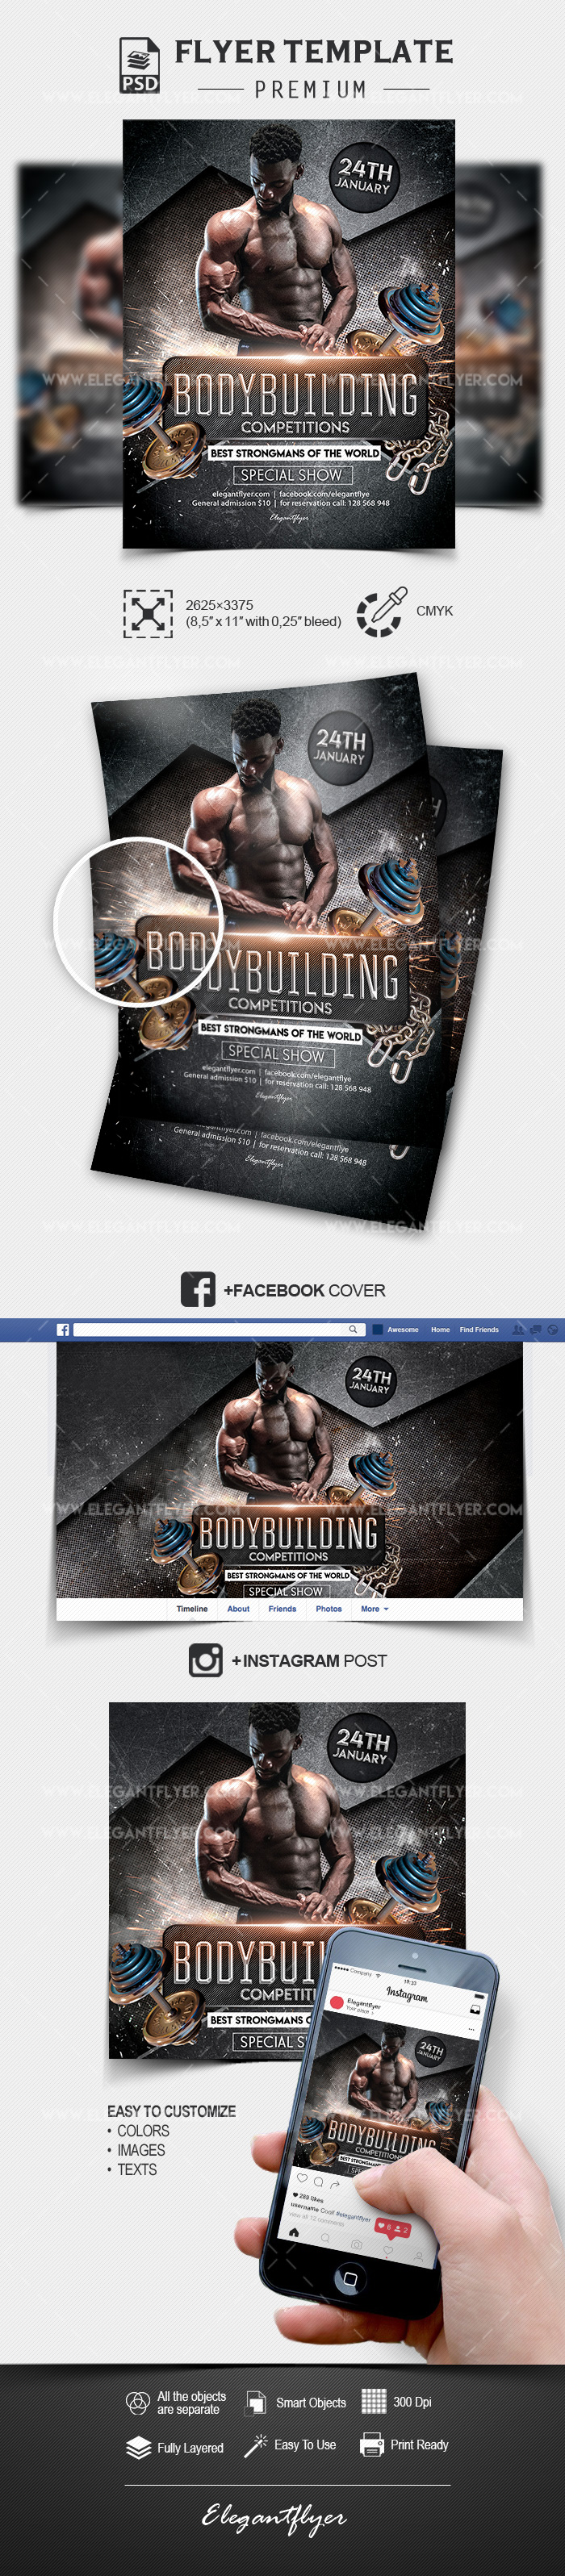 Bodybuilding Competitions – Flyer Template PSD